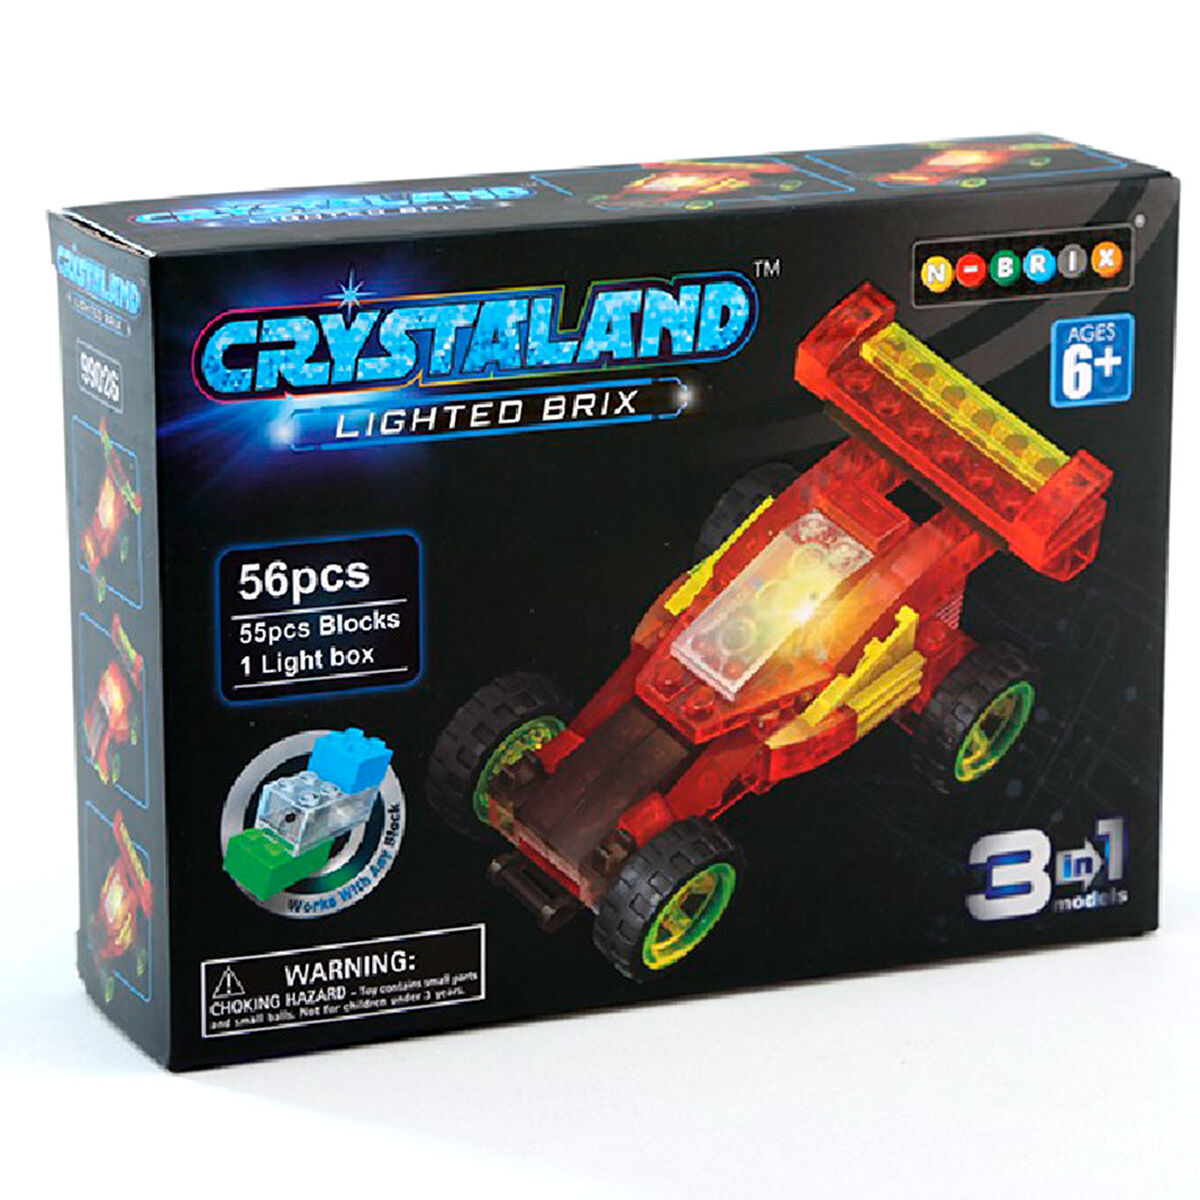 Set Bloques Crystaland Lighted Brix Auto